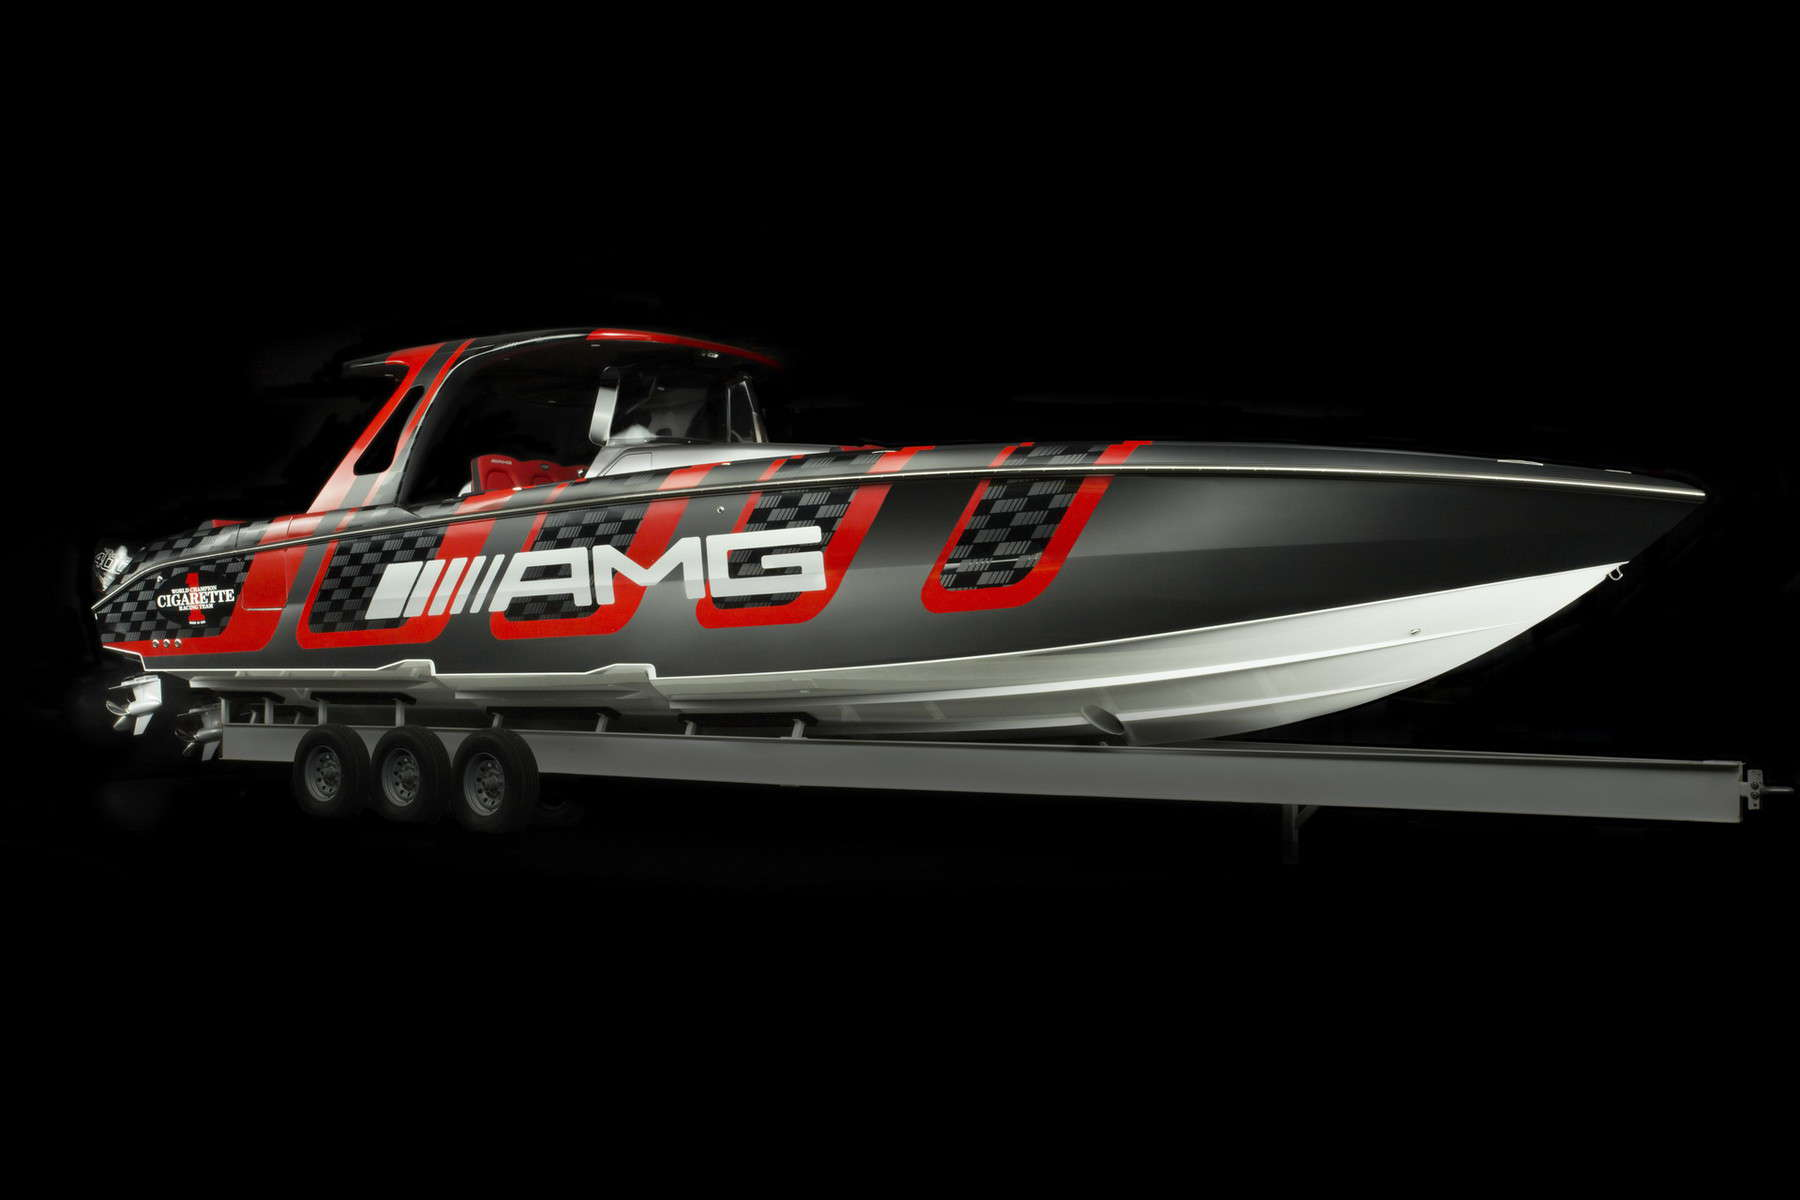 amg-carbon-edition-speedboat-from-mercedes-amg-and-cigarette-racing-5